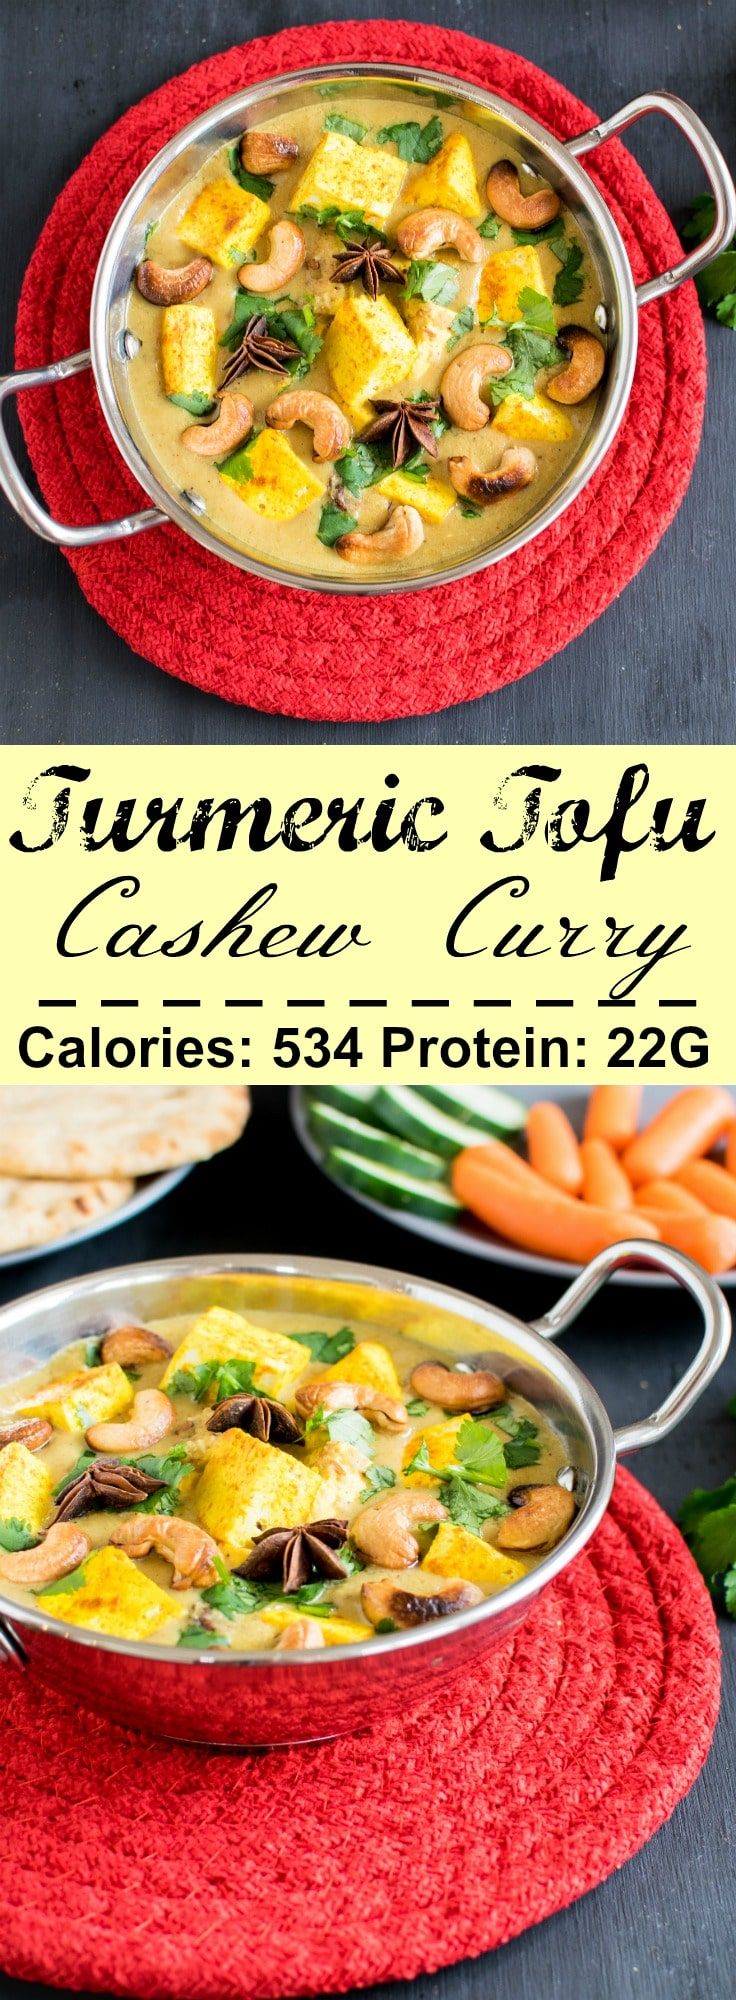 Multiple images of Turmeric Tofu Cashew Image with its titile and nutritional information